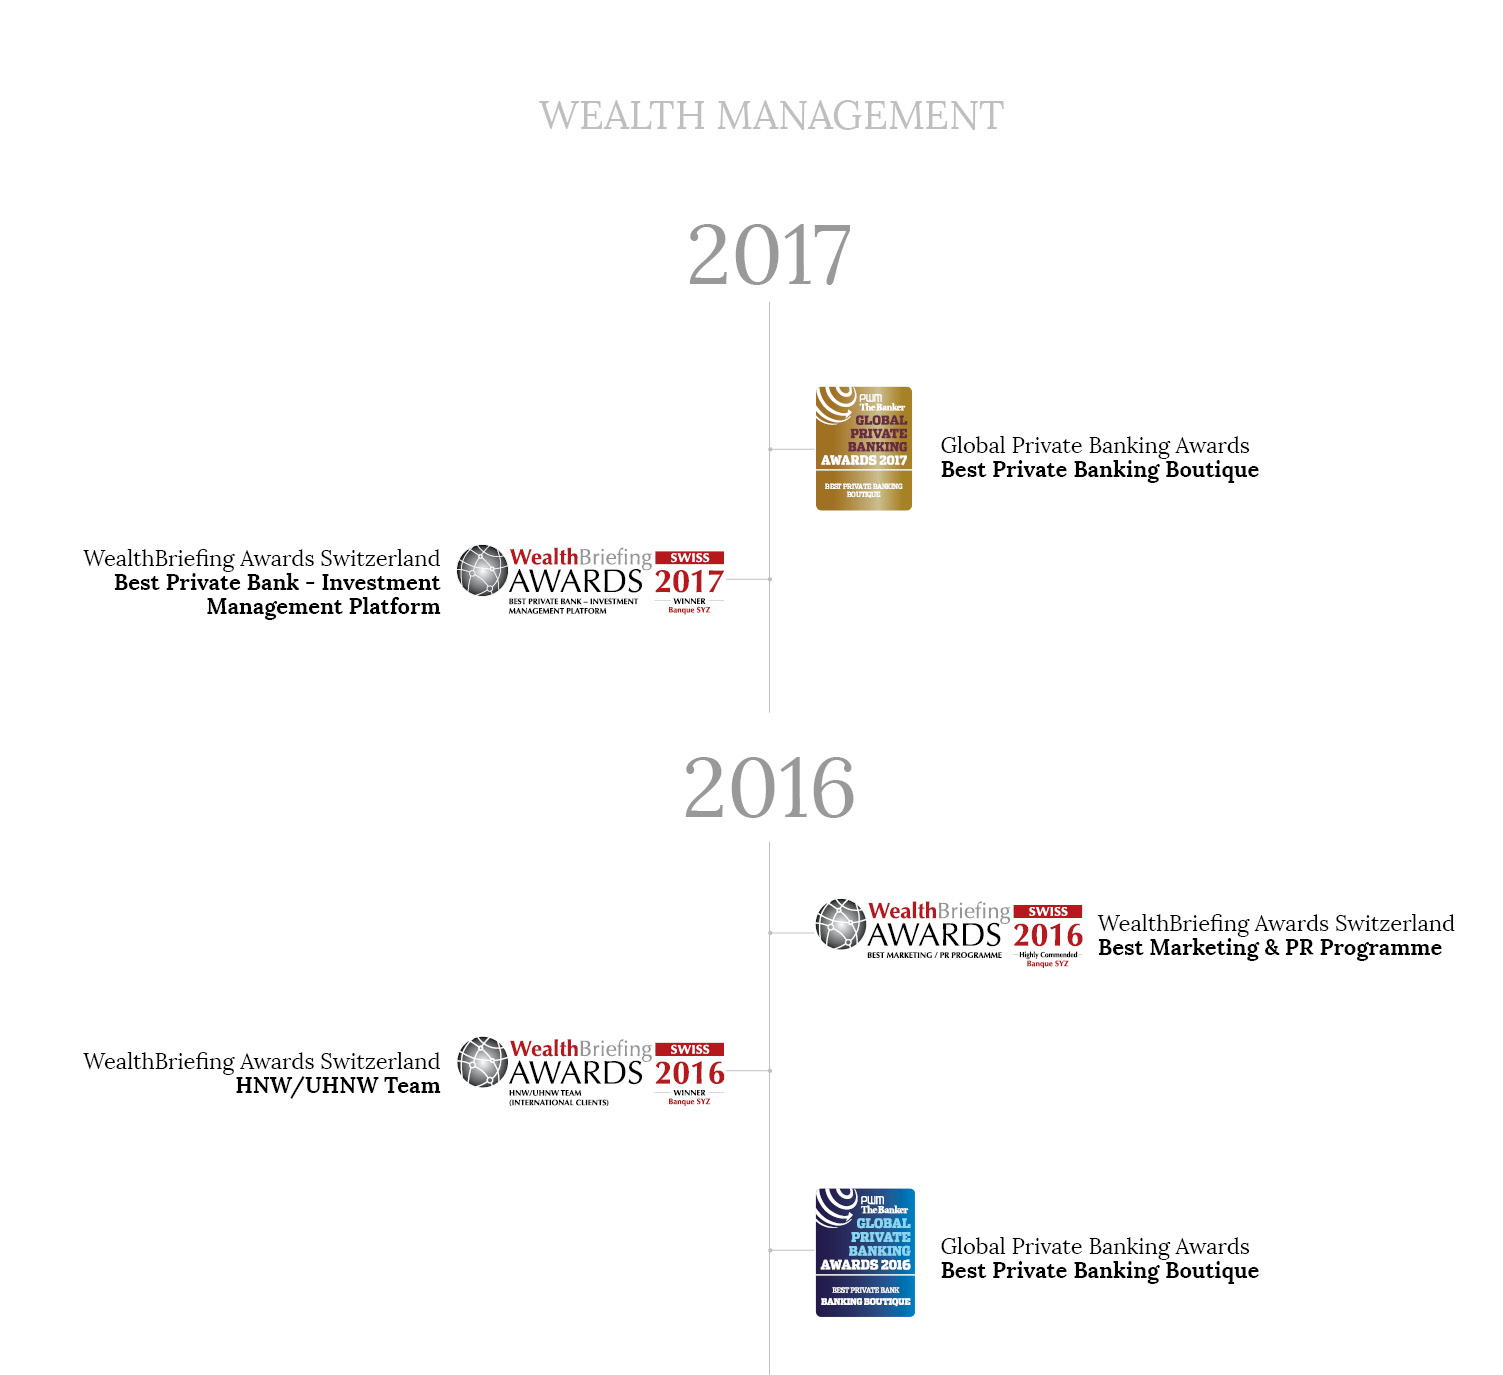 SYZ Wealth Management Awards